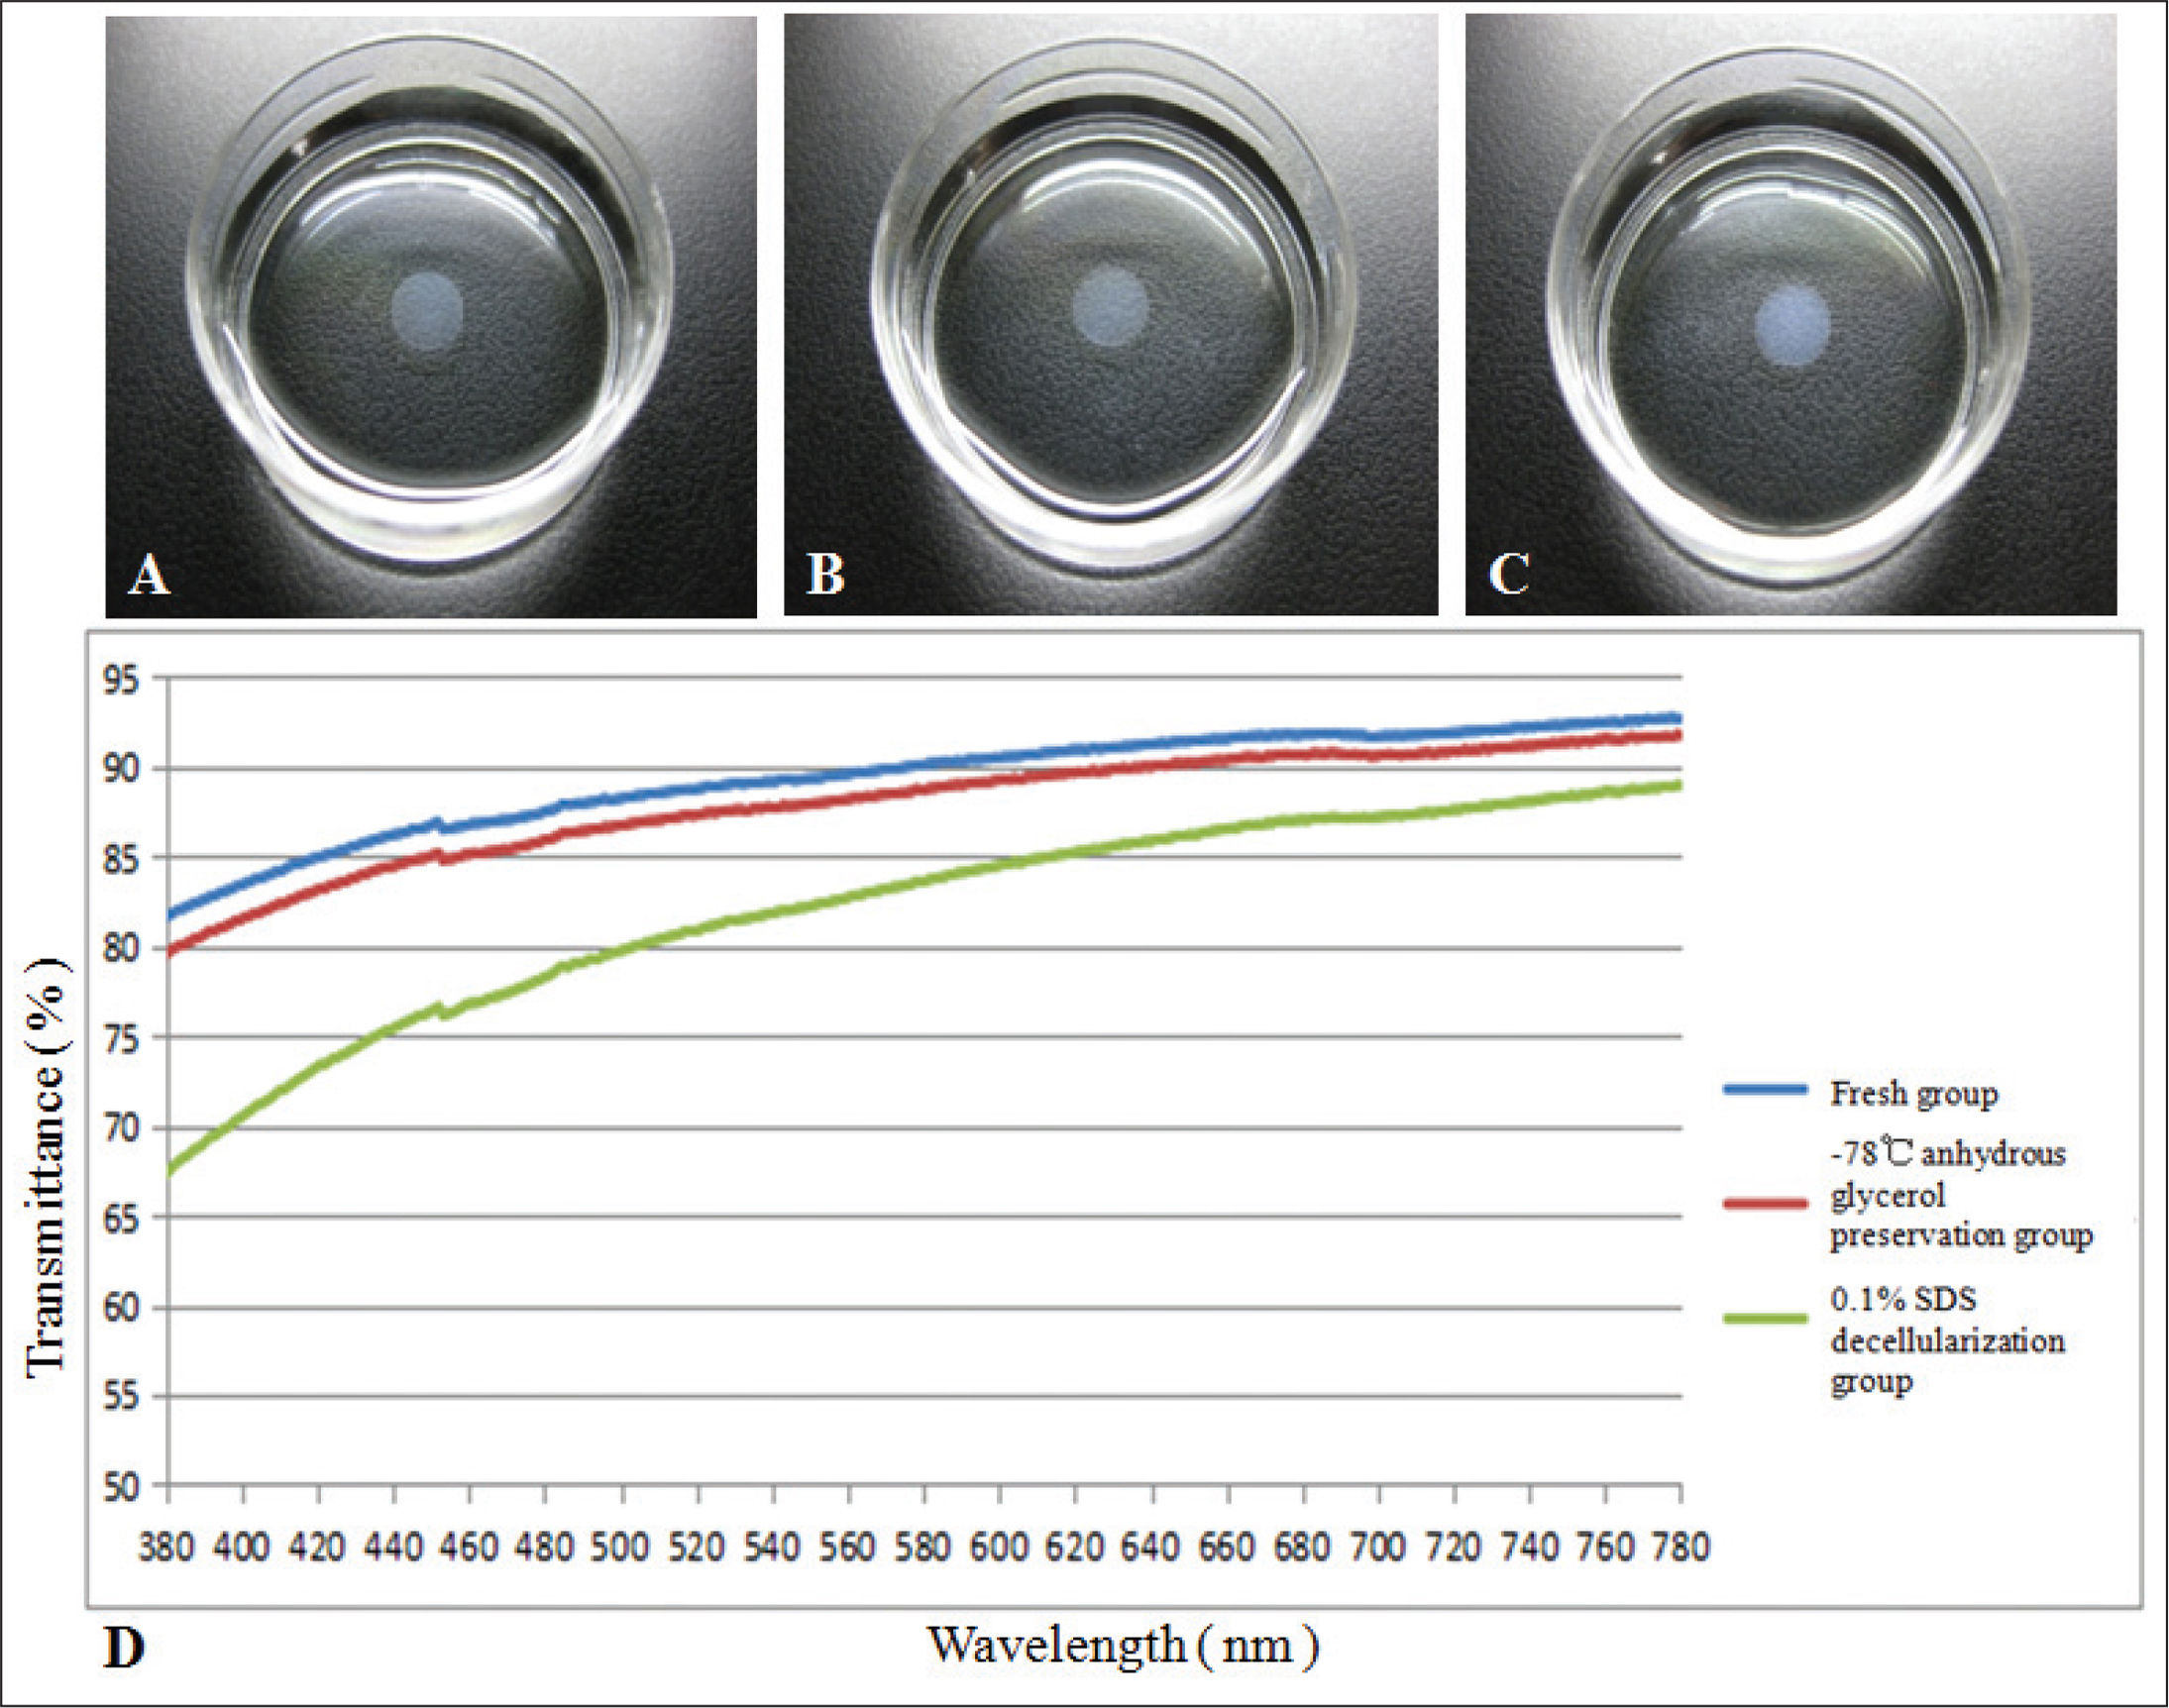 Transparency and transmittance of corneal stromal lenticules. The lenticules of the (A) fresh and (B) −78 °C anhydrous glycerol preservation group were transparent, and the lenticules in the (C) sodium dodecyl sulfate (SDS) group were turbid and edematous. The transmittance in the 380- to 780-nm spectrum of central lenticules was highest in the fresh group, slightly lower in the glycerol group, and lowest in the (D) 0.1% SDS group.